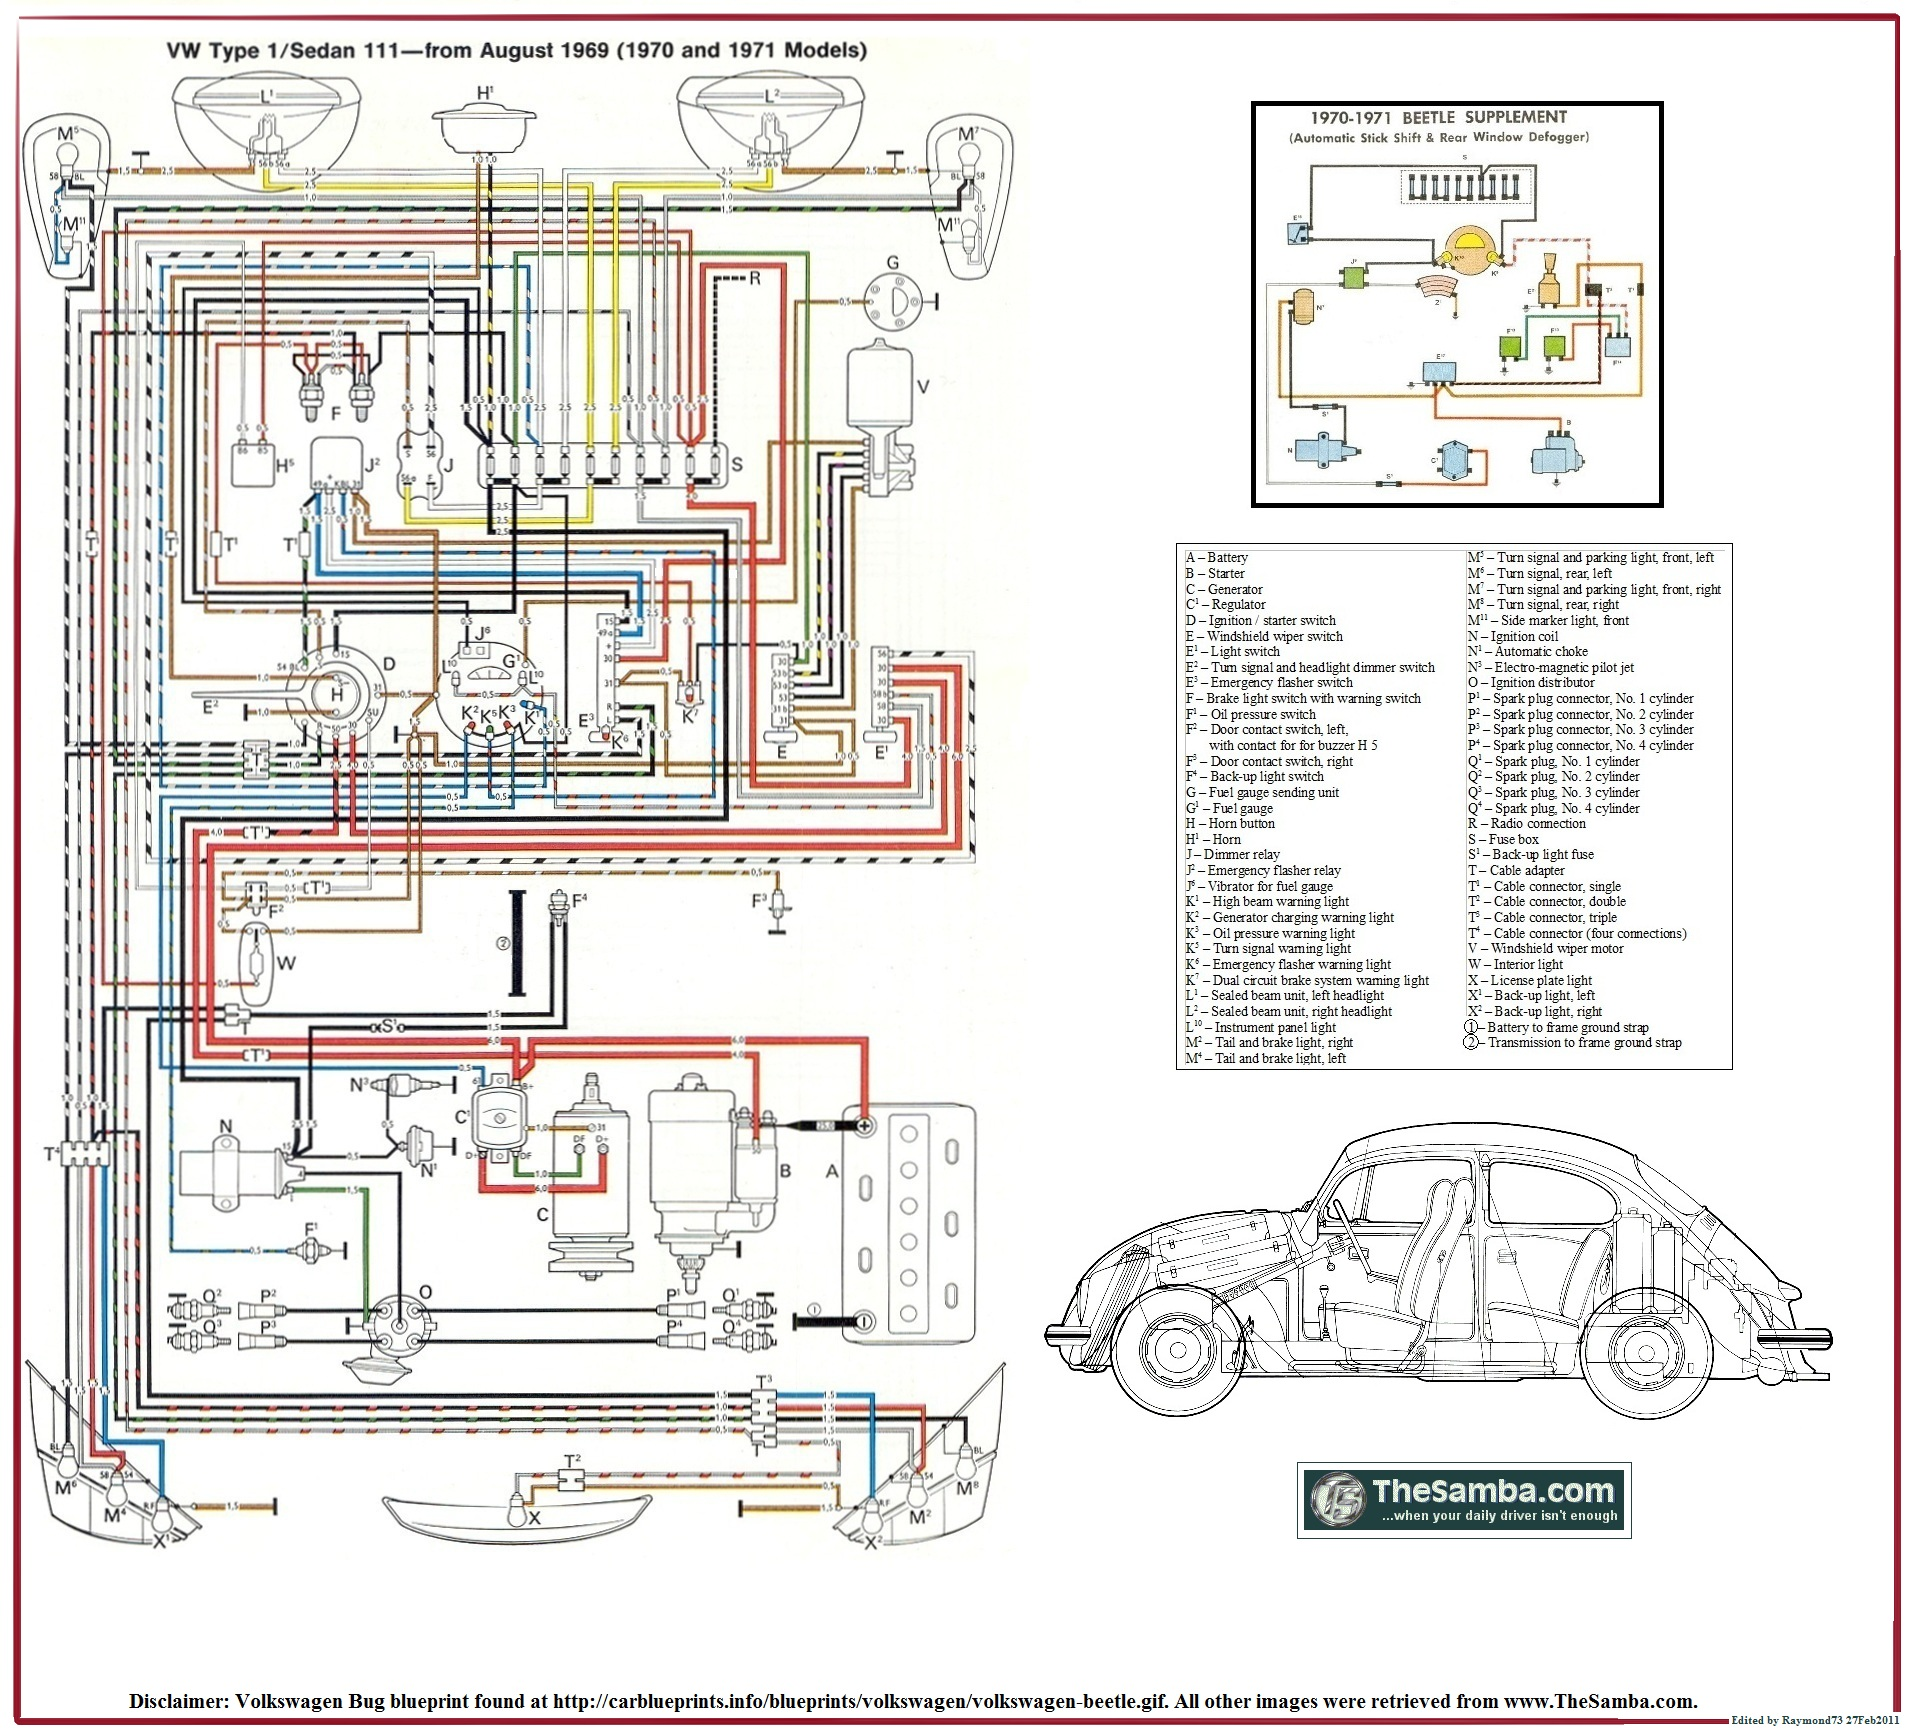 1970_VW_Type_1_Poster thesamba com beetle late model super 1968 up view topic vw bug wiring diagram at arjmand.co